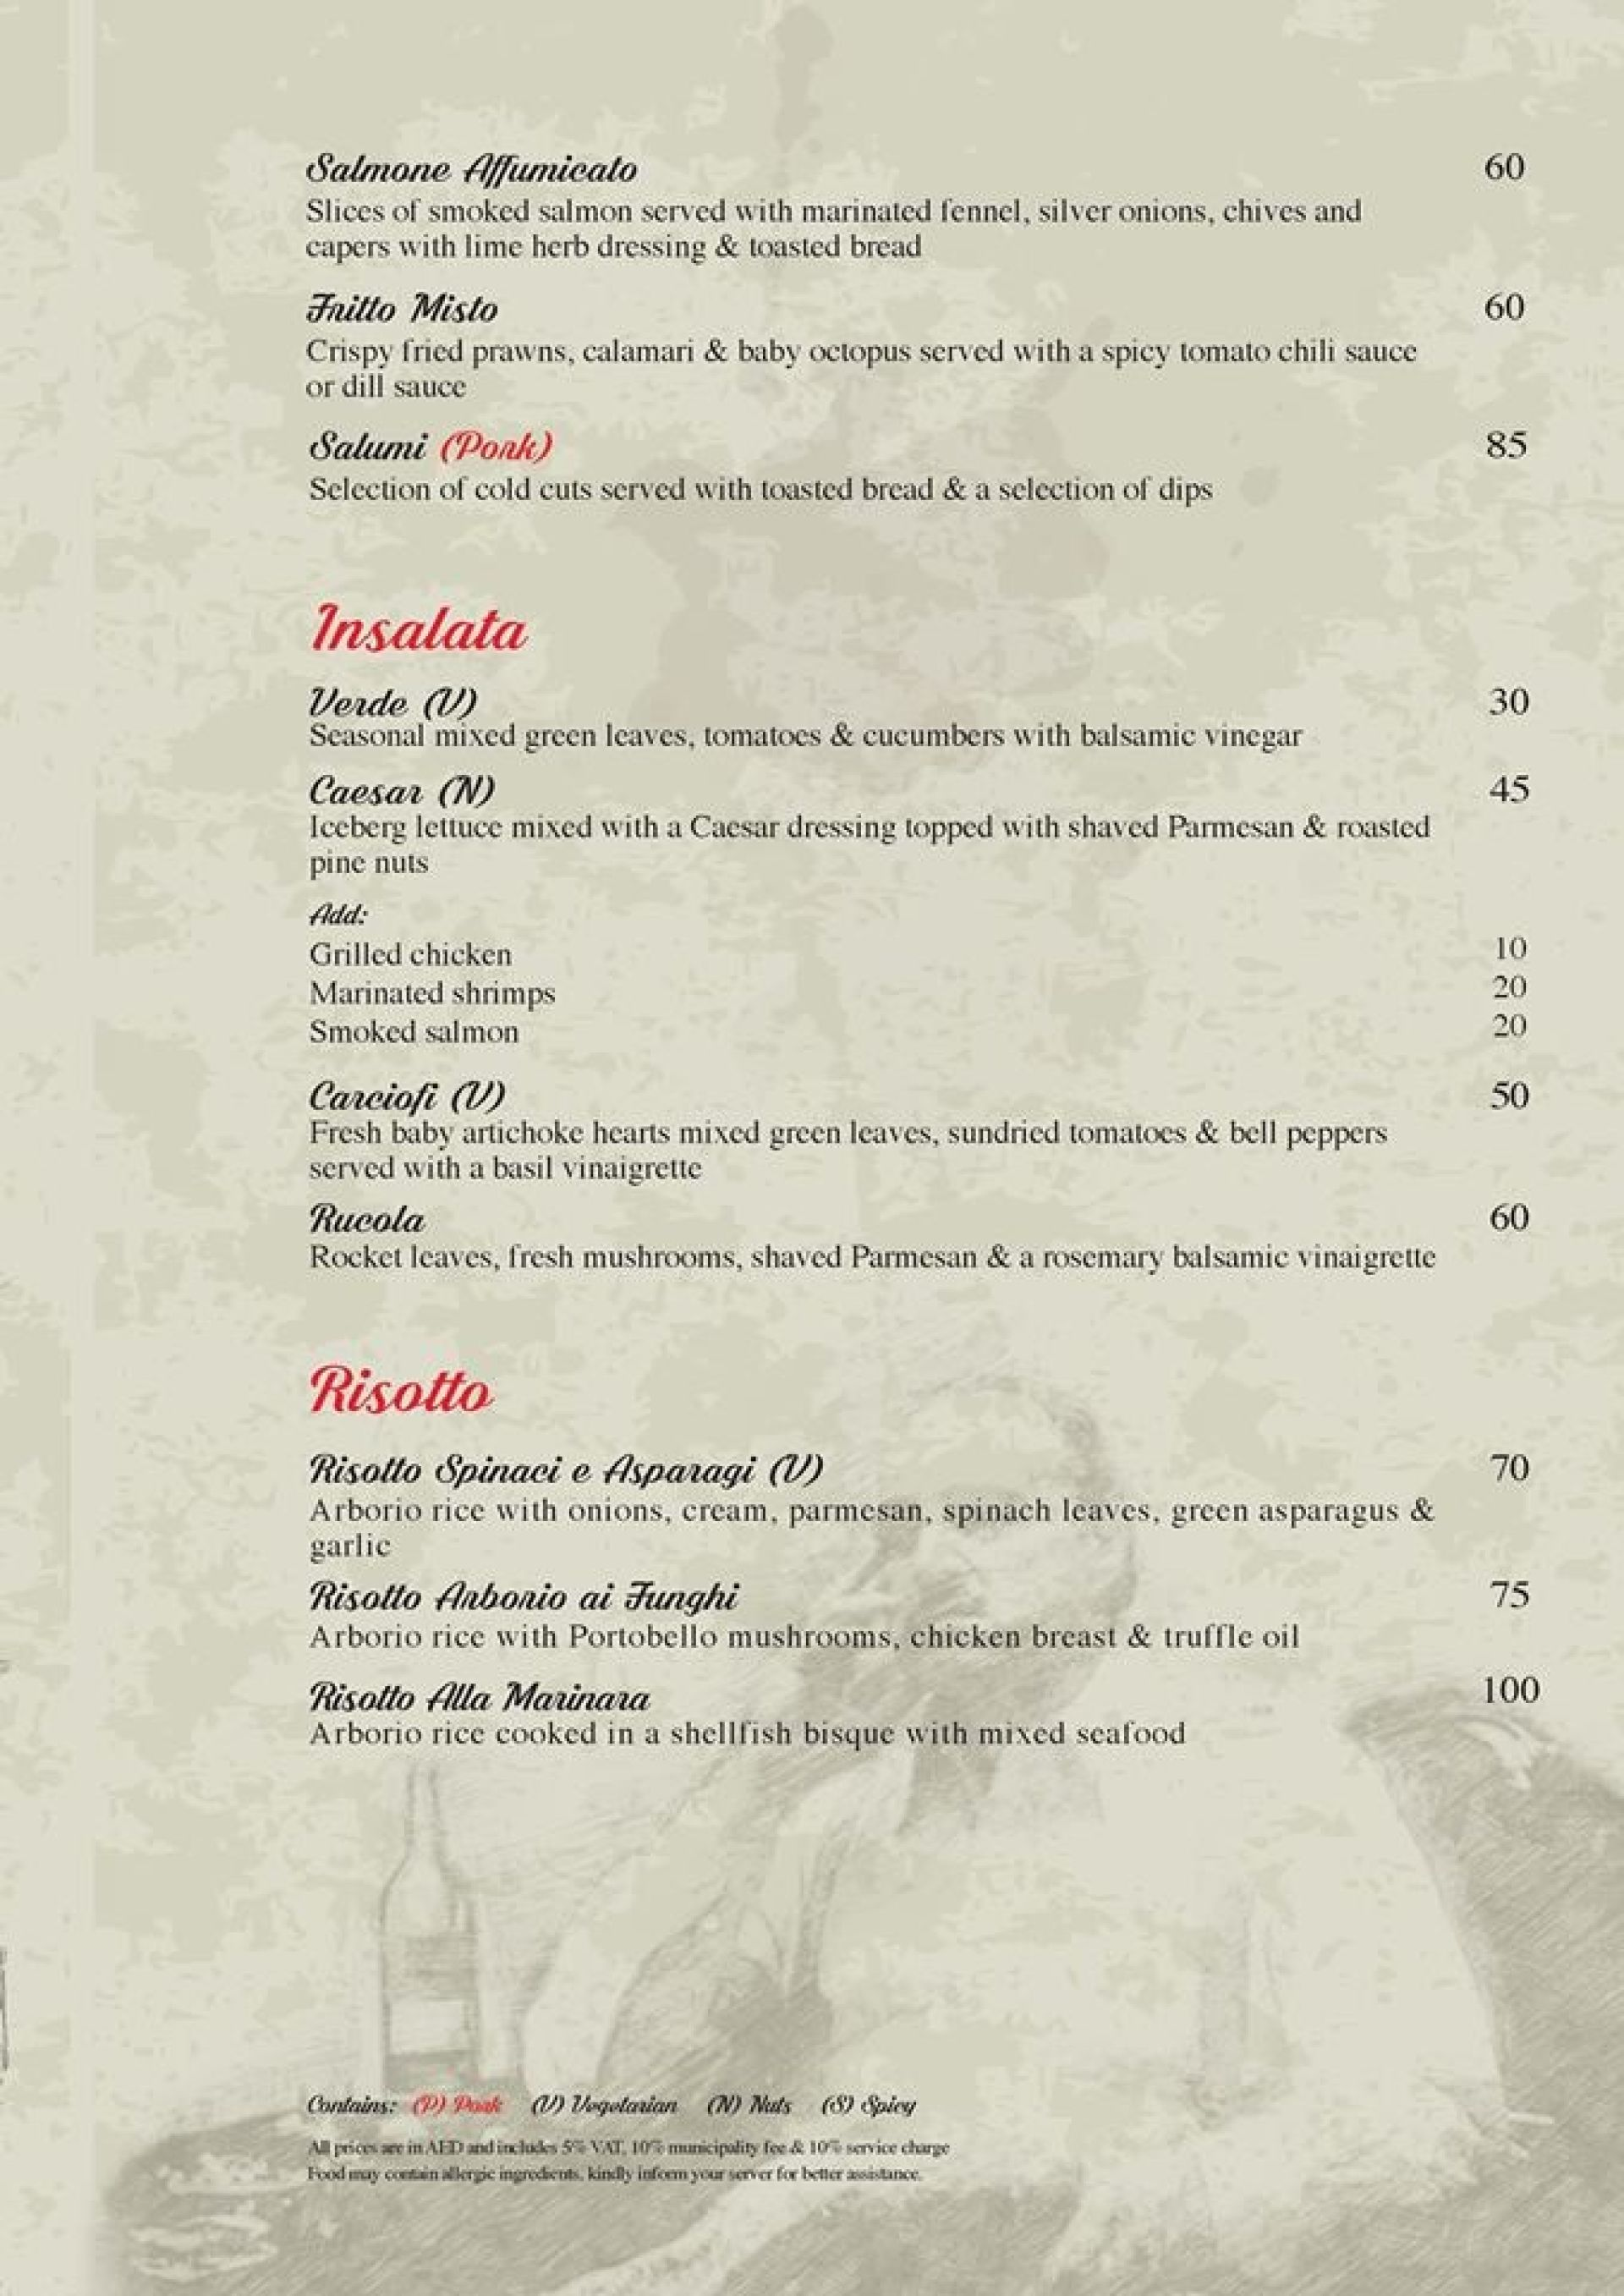 Menu of the Don Corleone